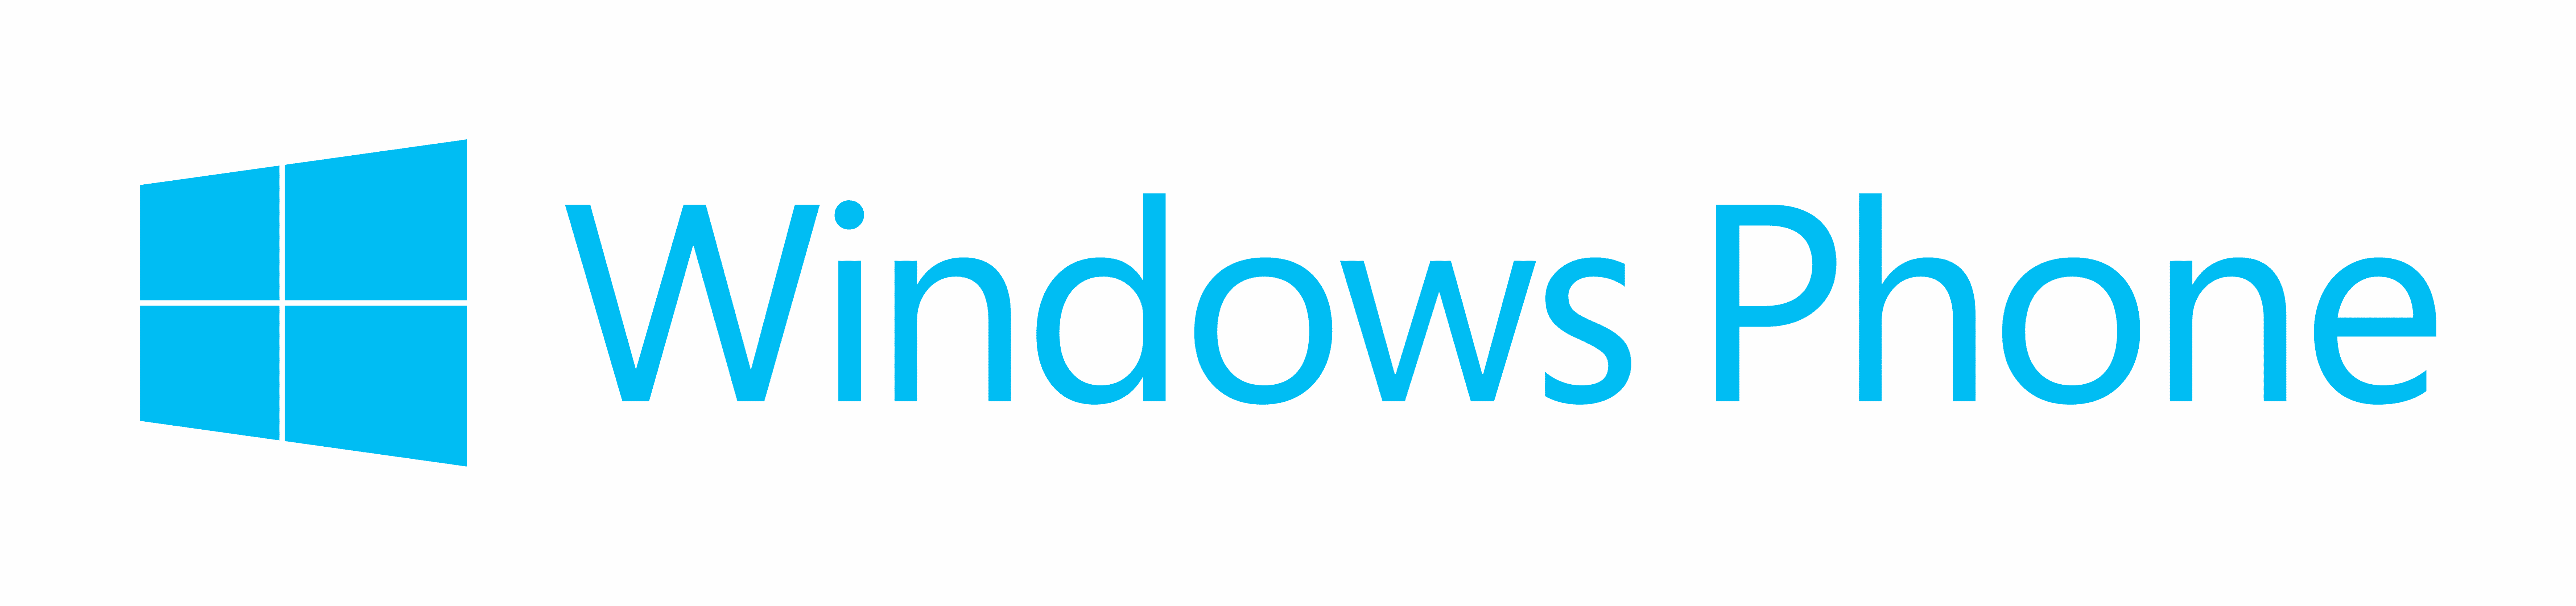 Windows Phone 10 logo